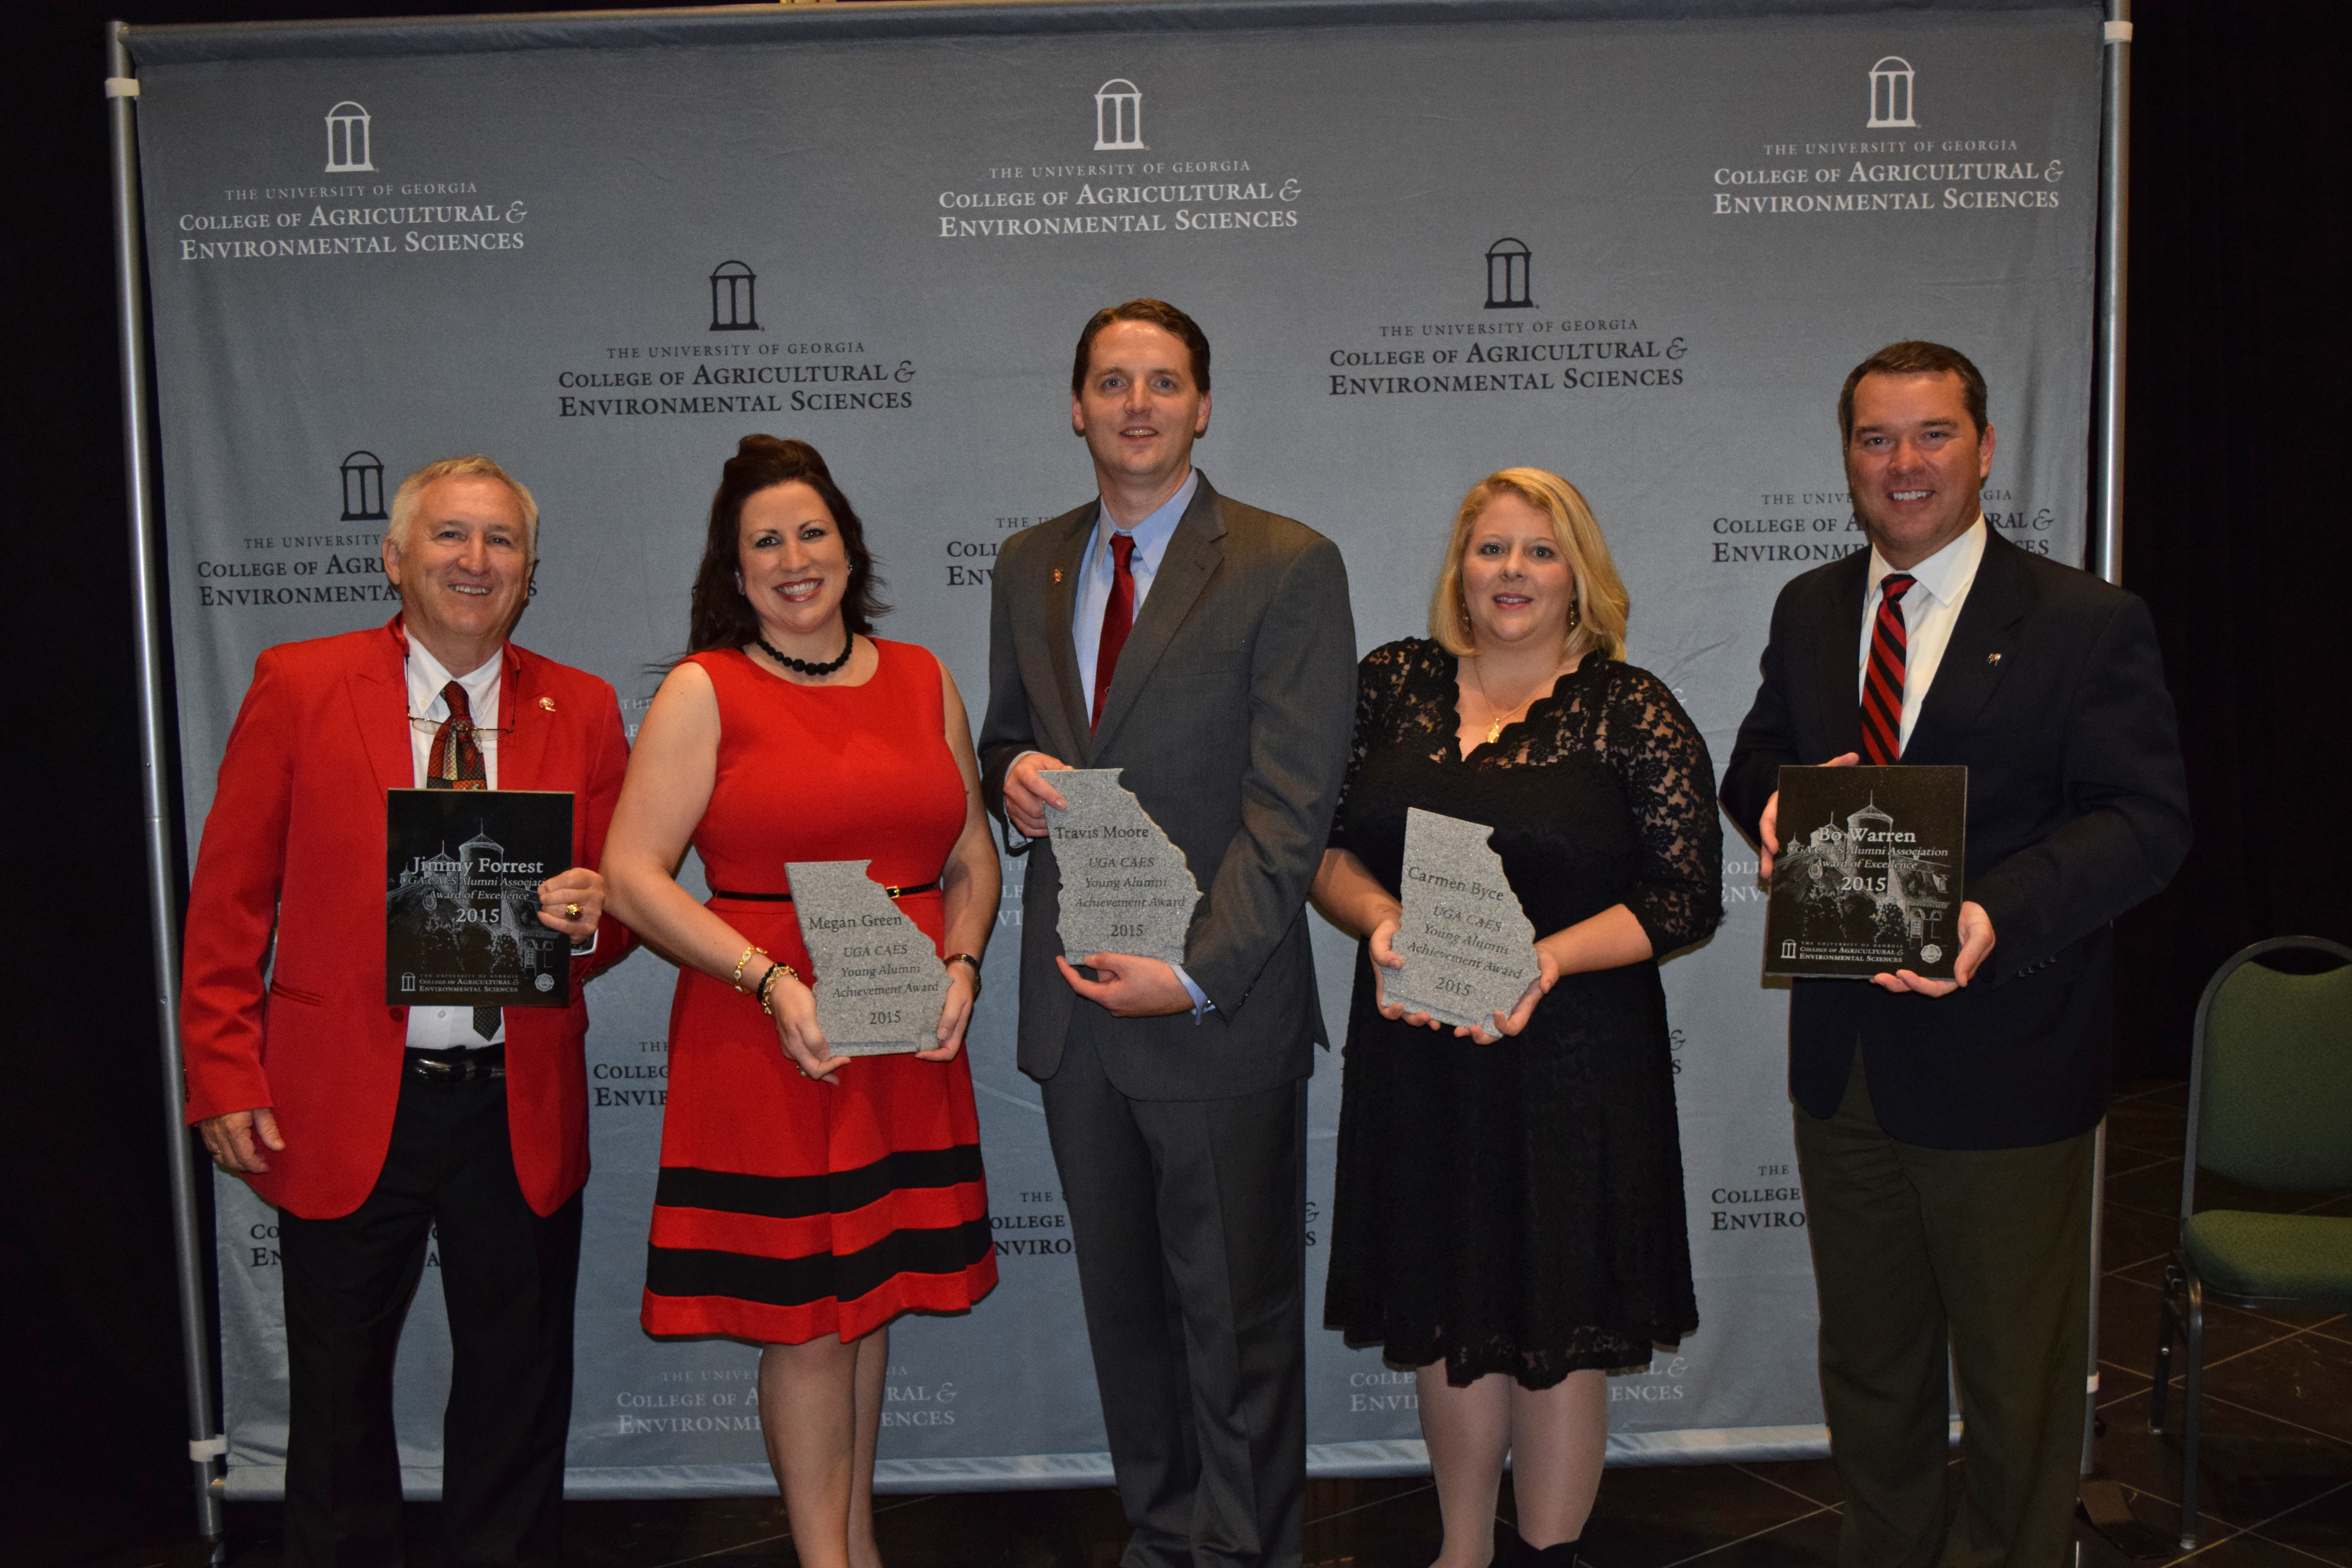 CAES Alumni Association Award of Excellence winners Jimmy Forrest, left, and Bo Warren flank the 2015 CAES Alumni Association Young Alumni Award winners Megan Greene, Travis Moore and Carmen Byce.